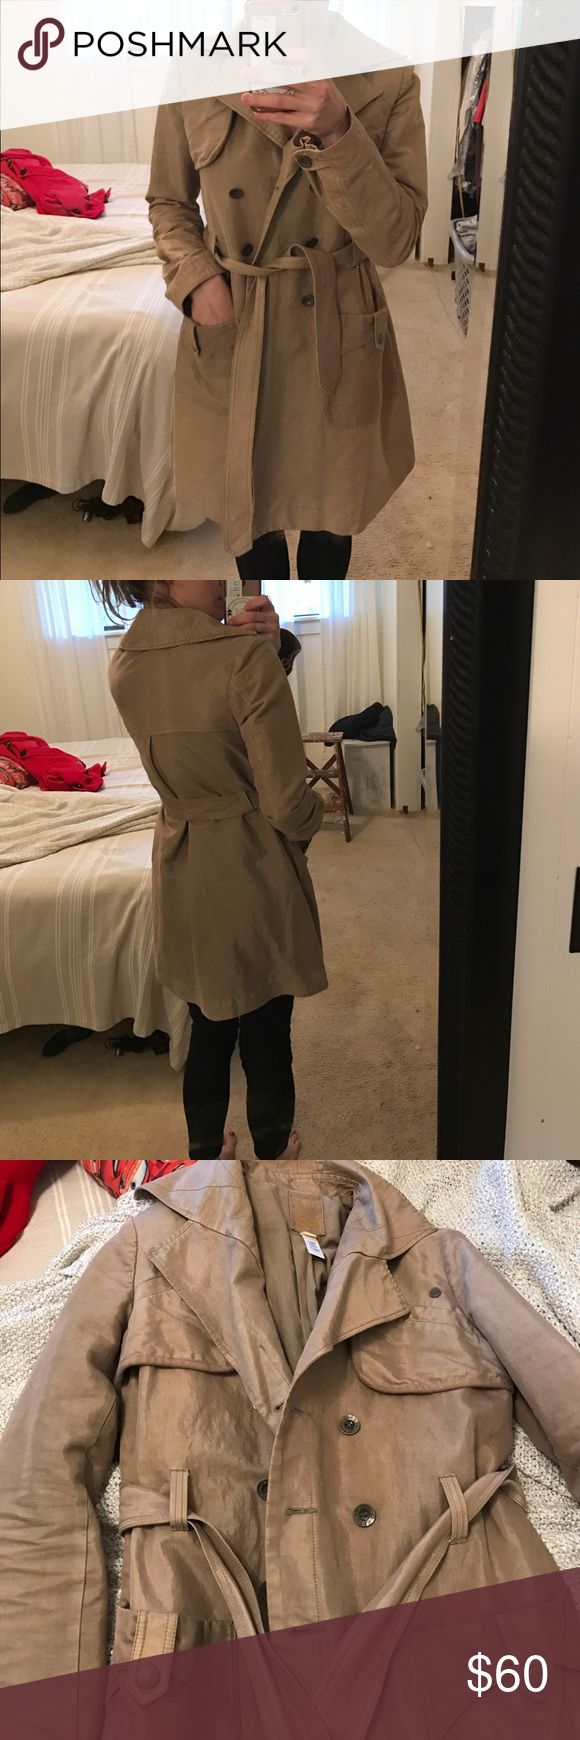 DIESEL KHAKI TRENCHCOAT Perfect condition. Super warm + water resistant. It has an extra lining inside that makes it warm but not too warm. Light sheen to the material and changes in various lighting. Tan in color. Diesel Jackets & Coats Trench Coats